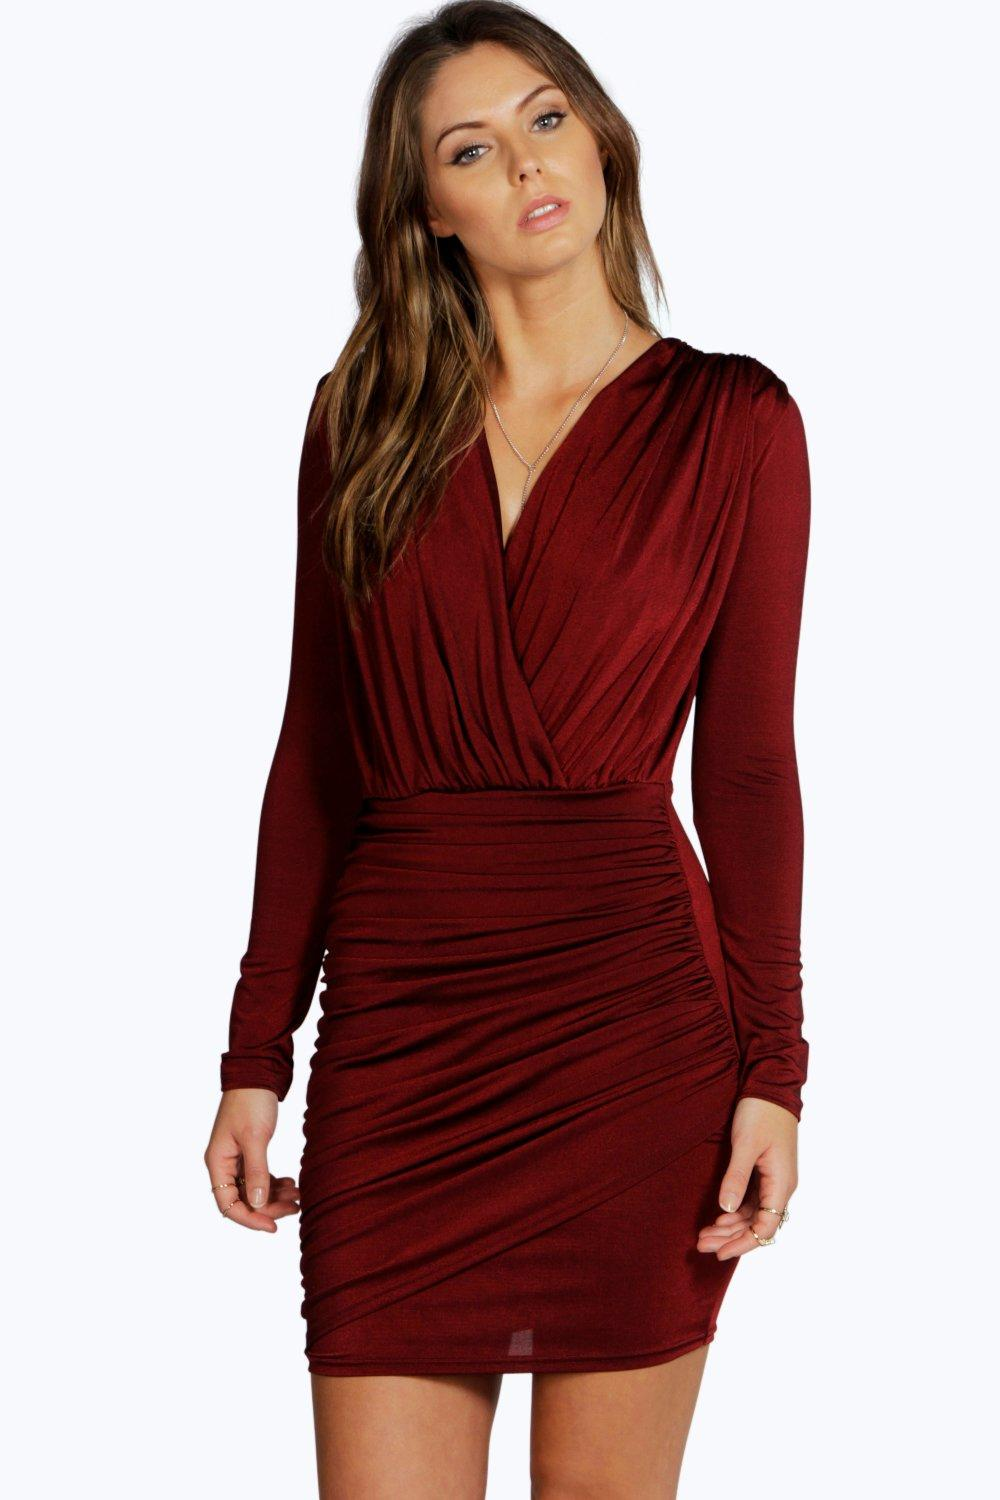 bodycon-dress-trends-7